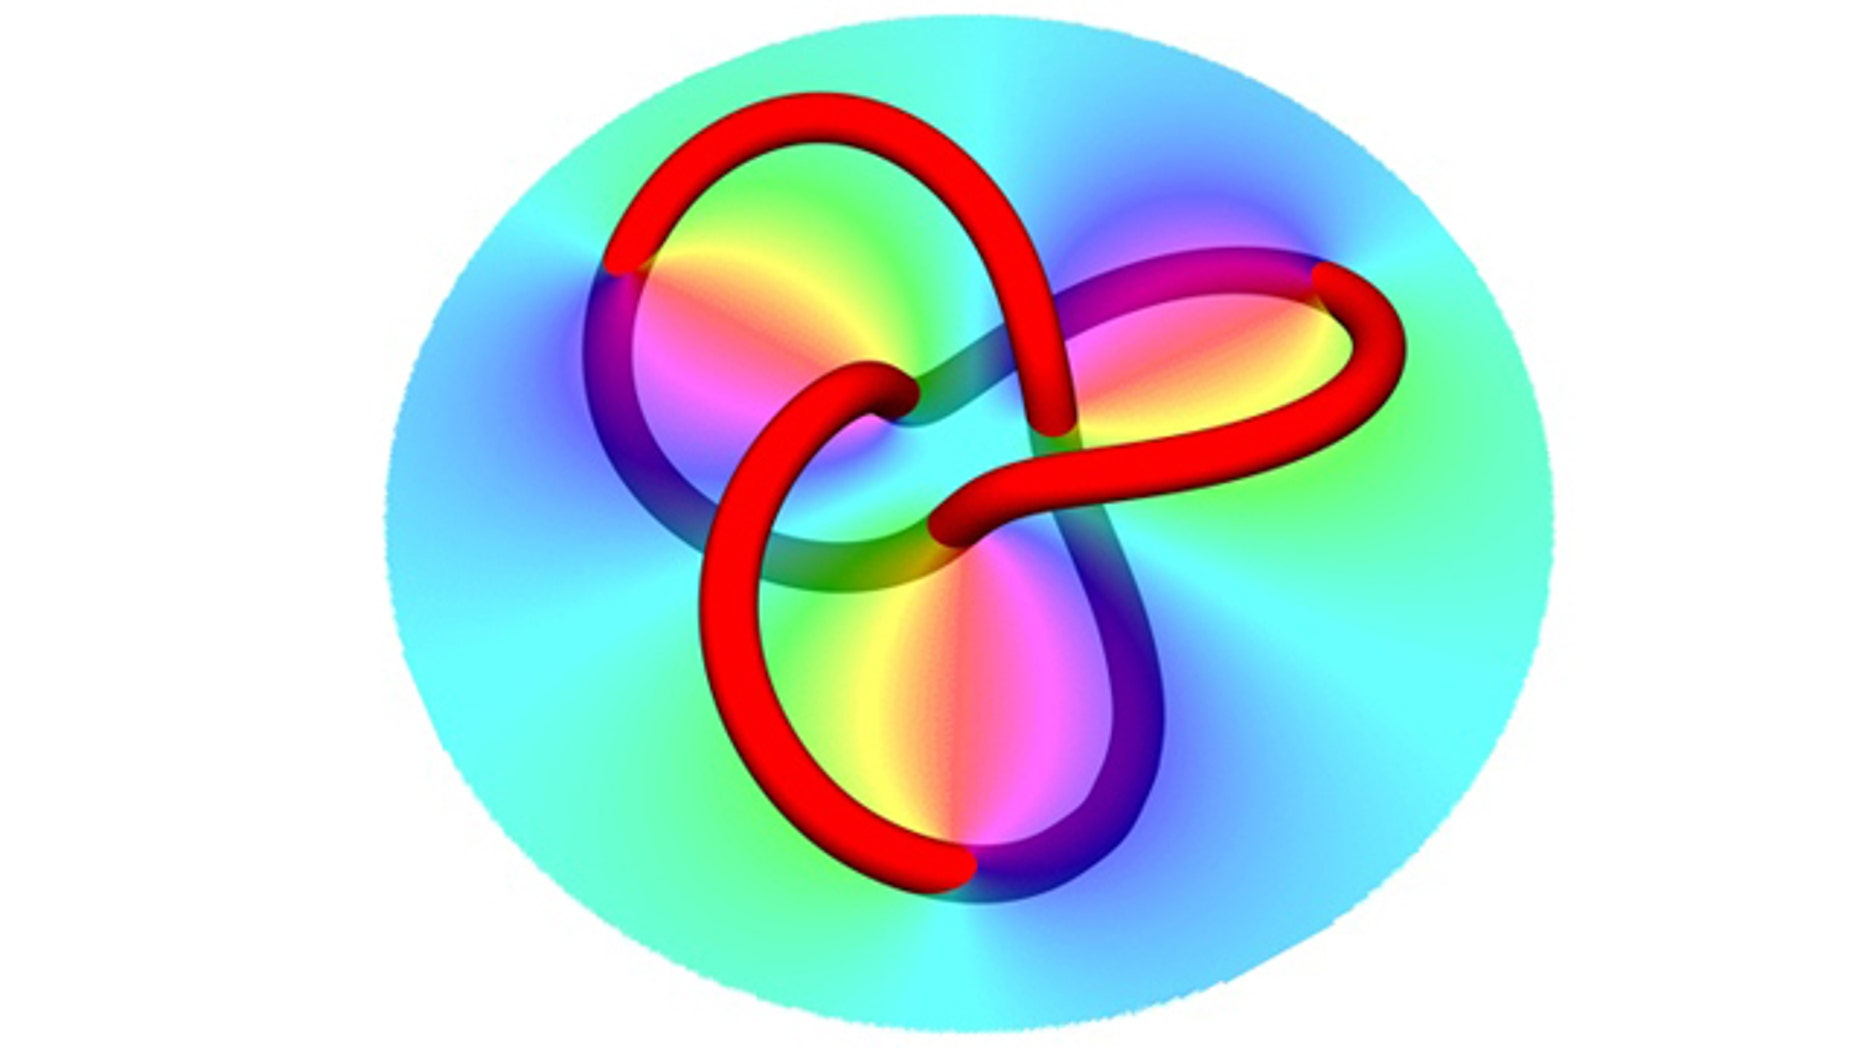 By reflecting a laser beam from a specially designed hologram (shown here as the colored circle), physicists created knots of dark filaments (represented by the colored knot).